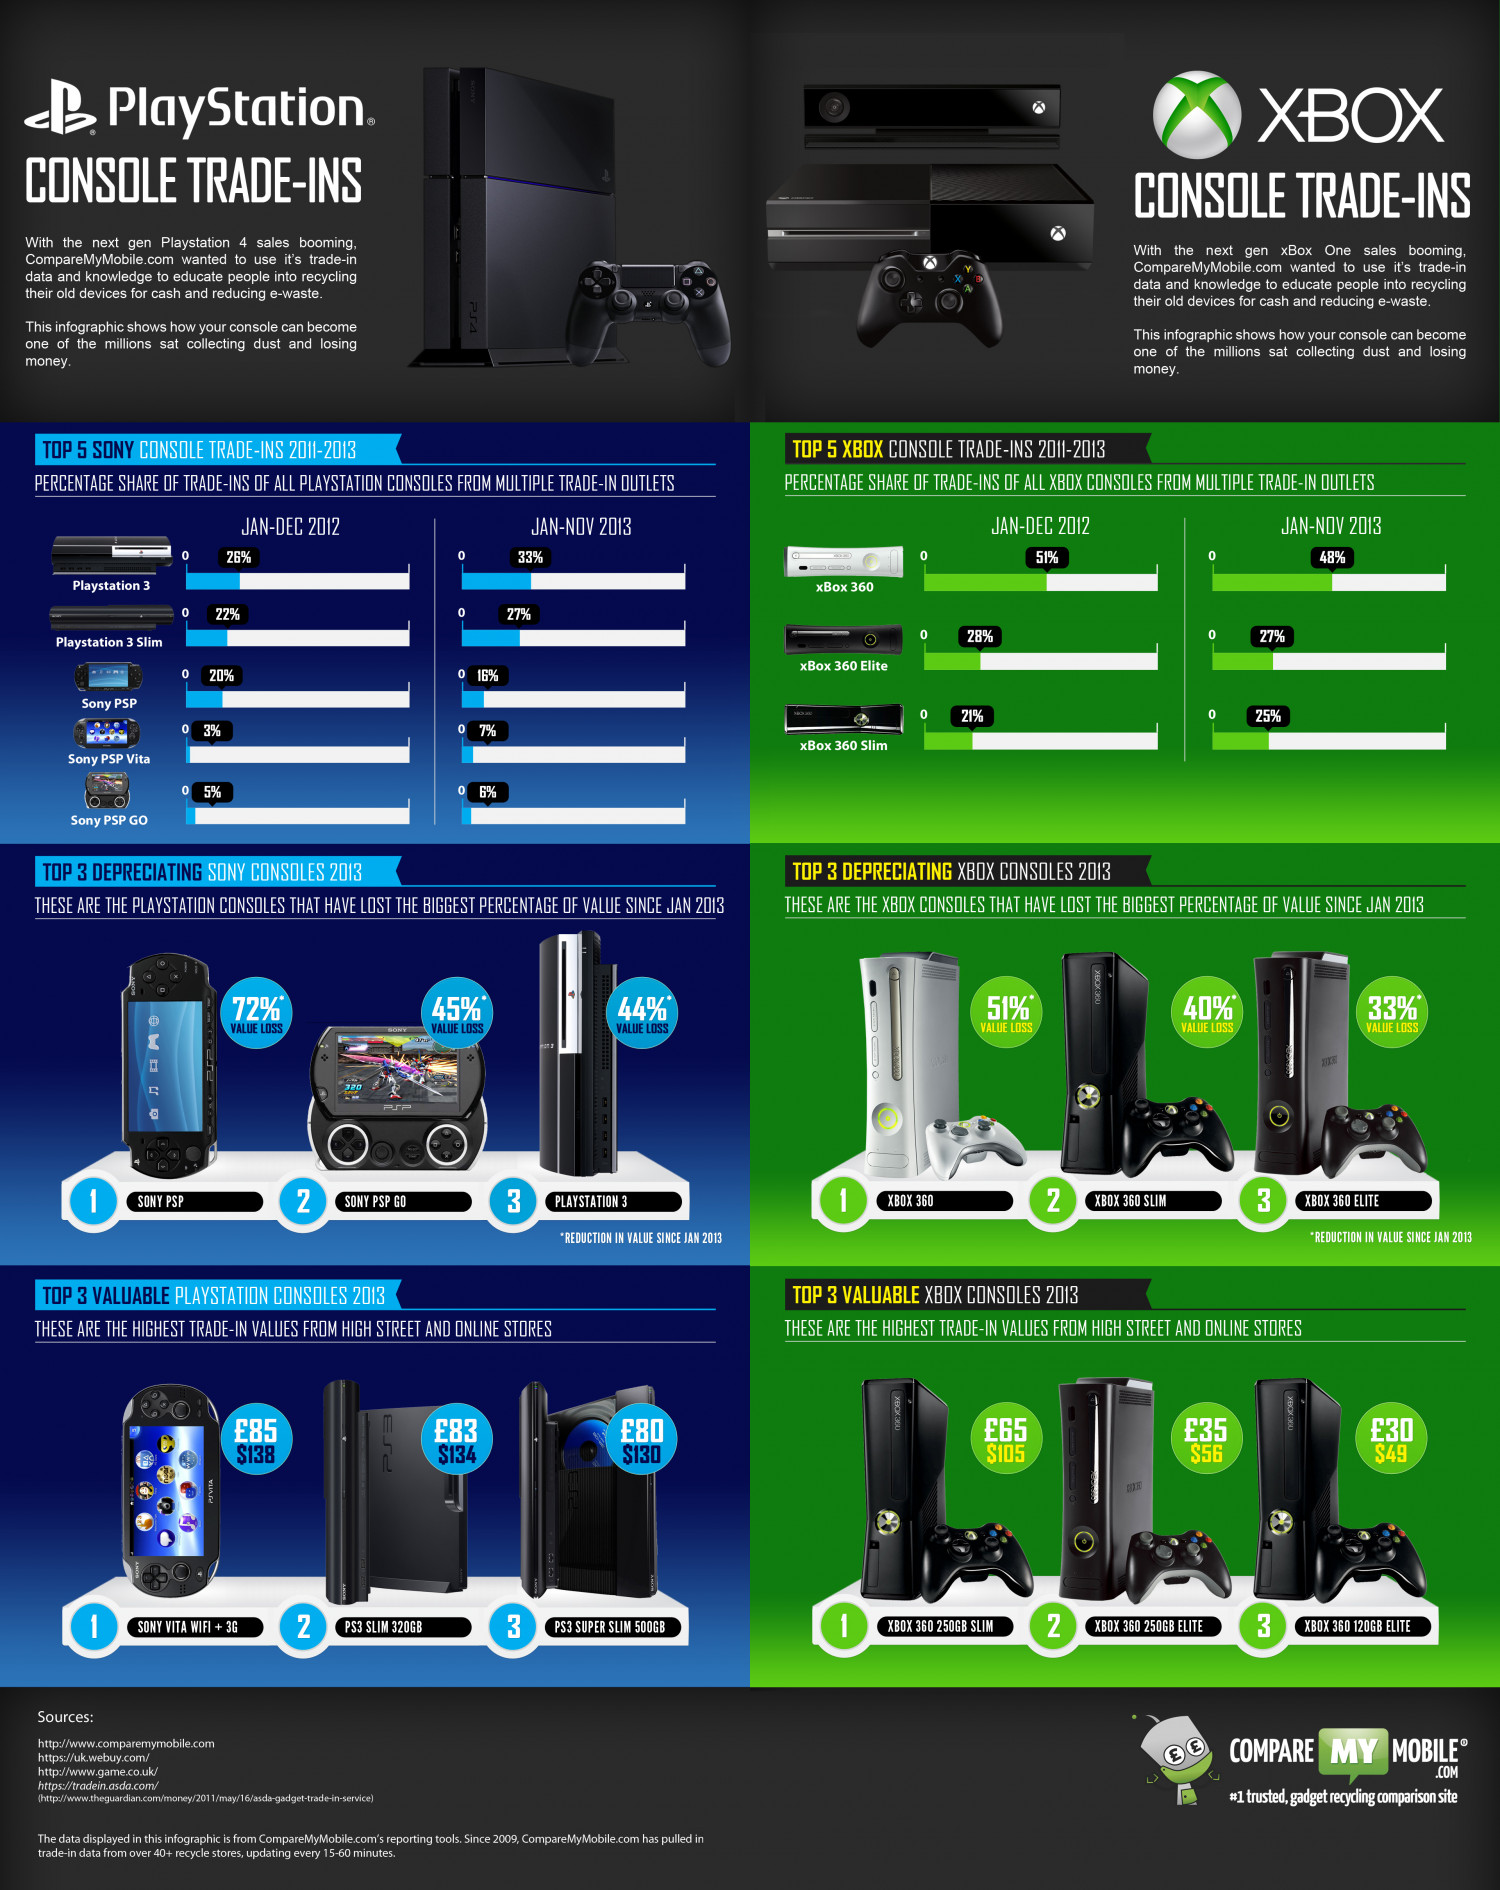 xBox VS Playstation Trade-in Value | Visual.ly